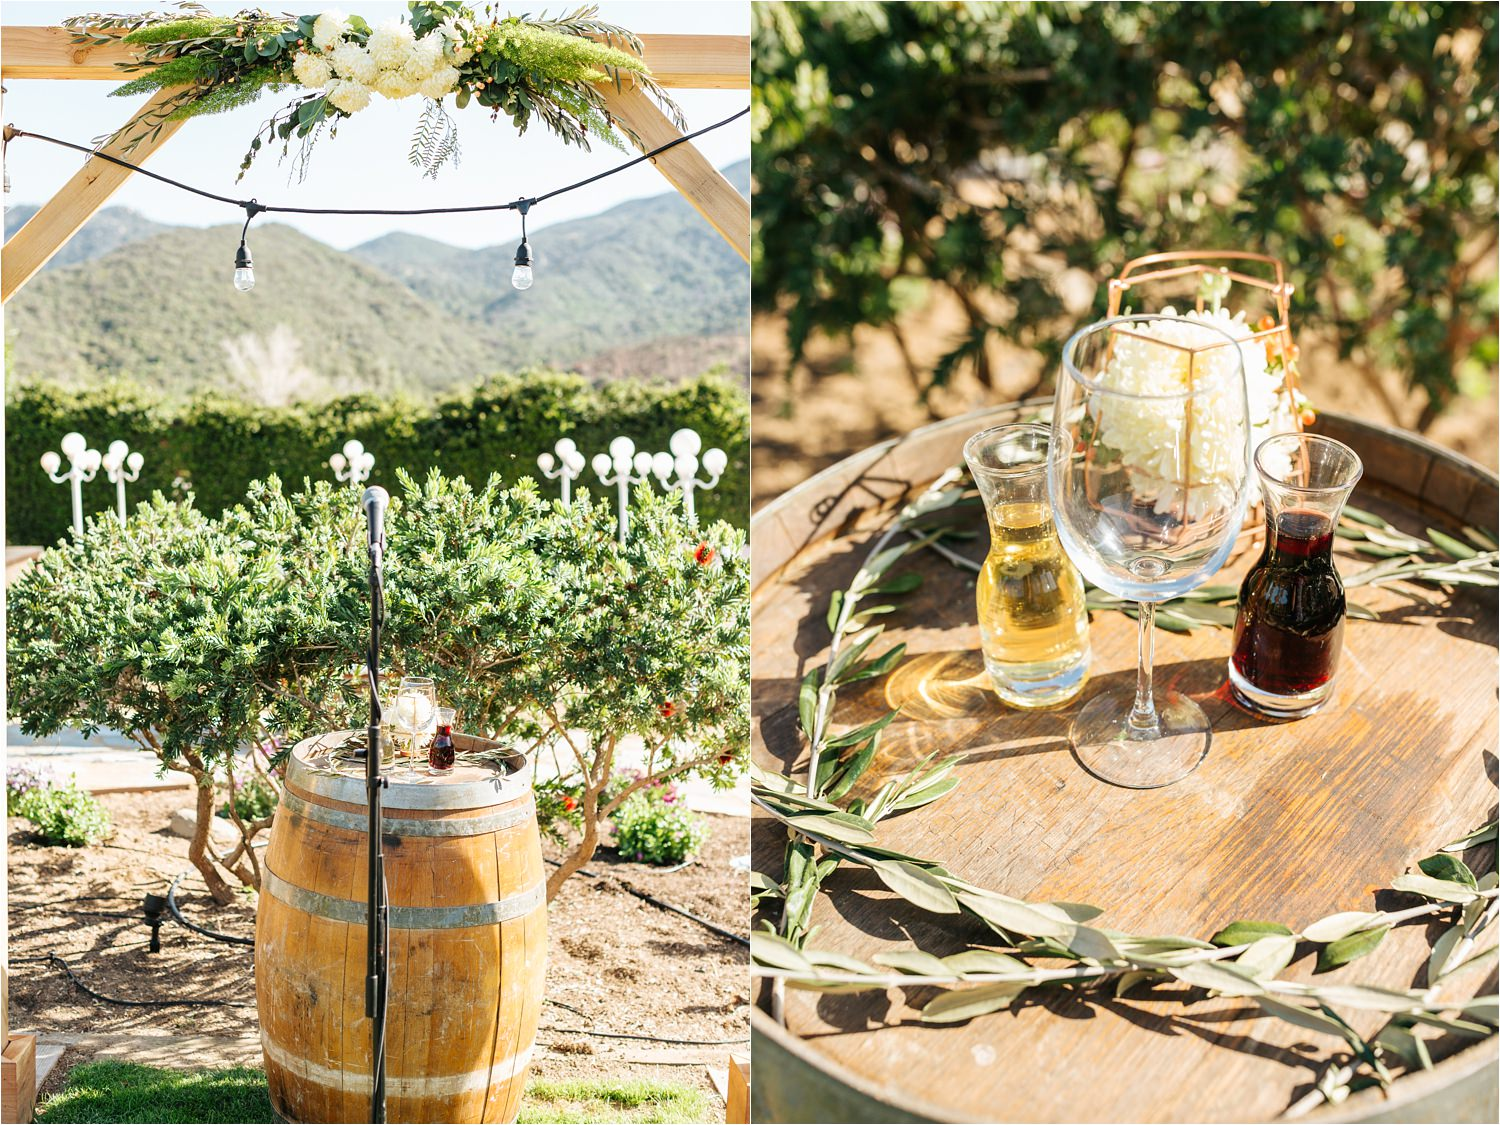 Dreamy backyard wedding details - Ceremony decor - DIY wedding in California - https://brittneyhannonphotography.com